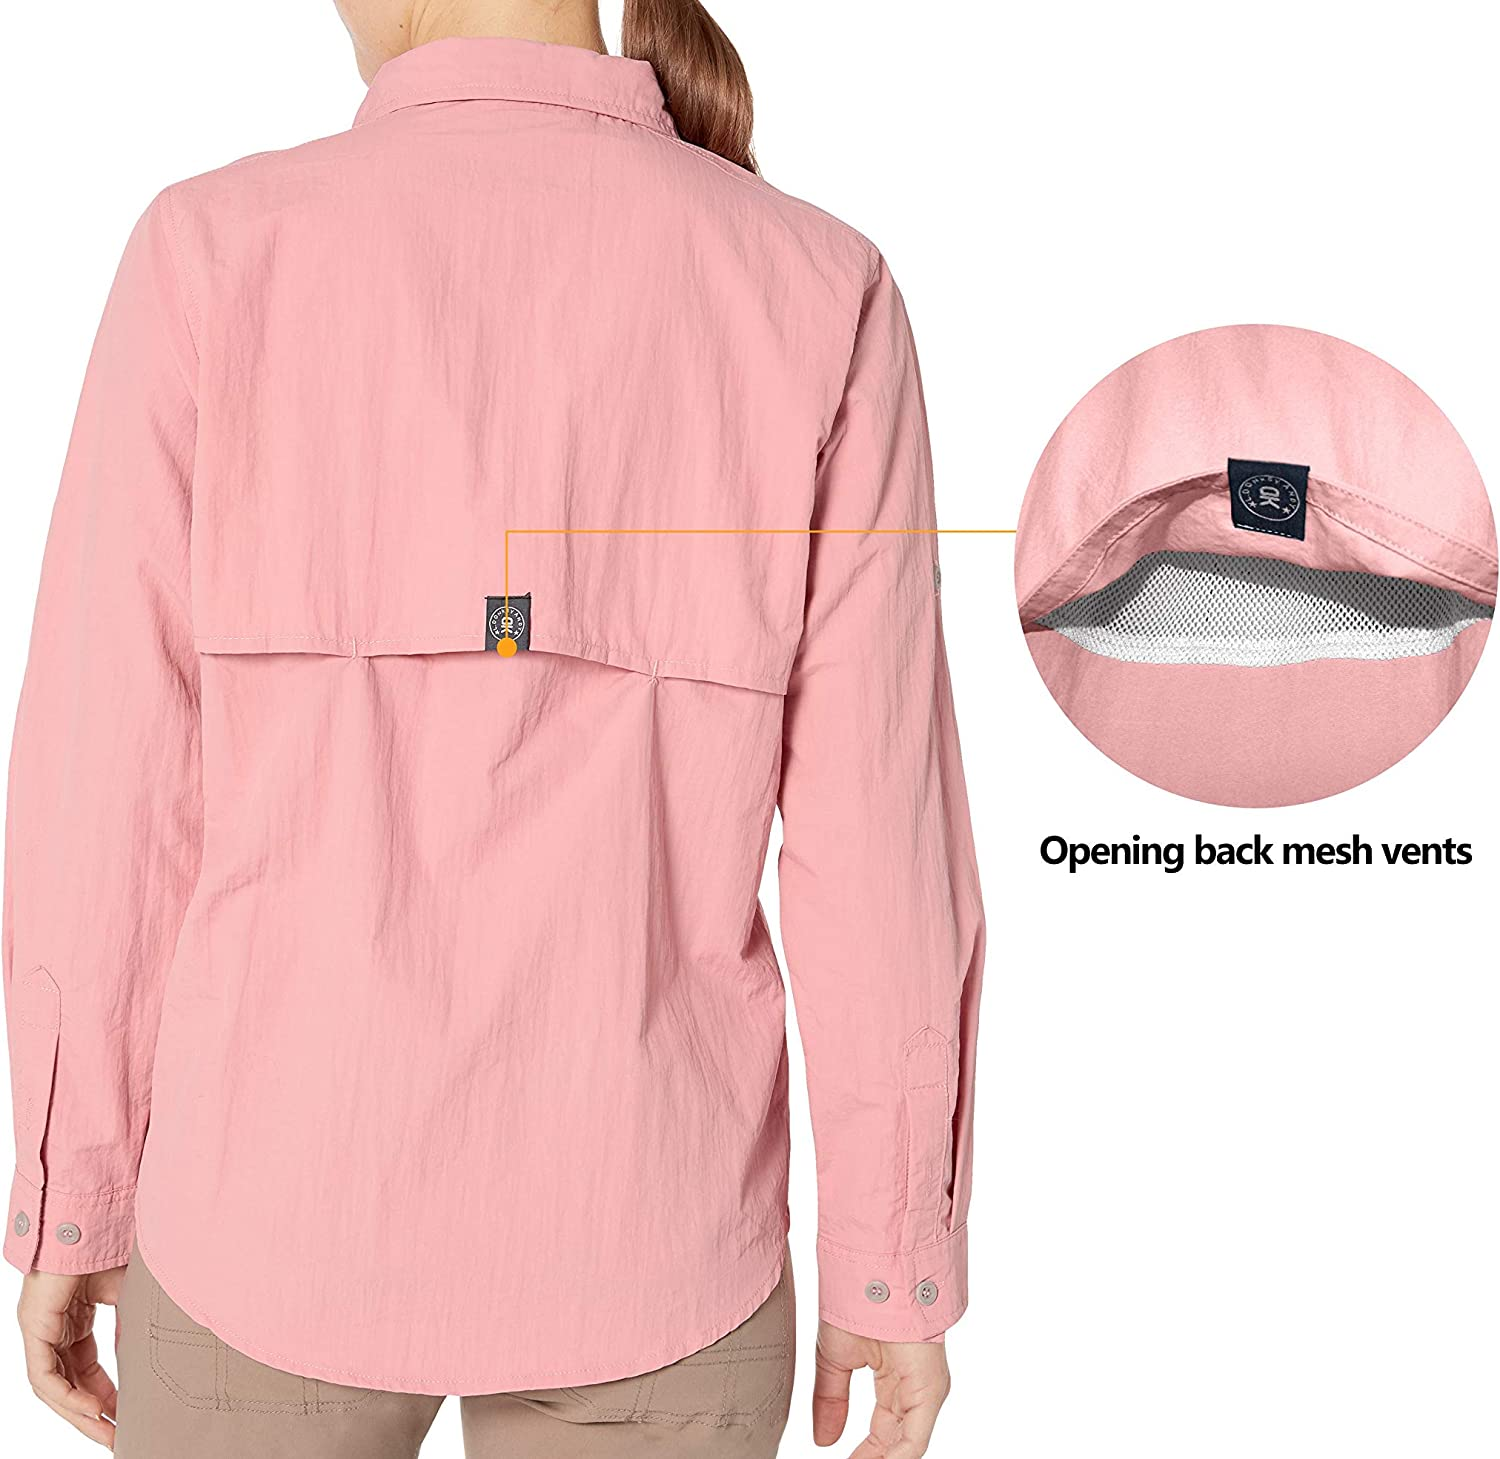 UV Protection Shirt Little Donkey Andy Womens UPF 50 Breathable and Fast Dry Long Sleeve Fishing Shirt